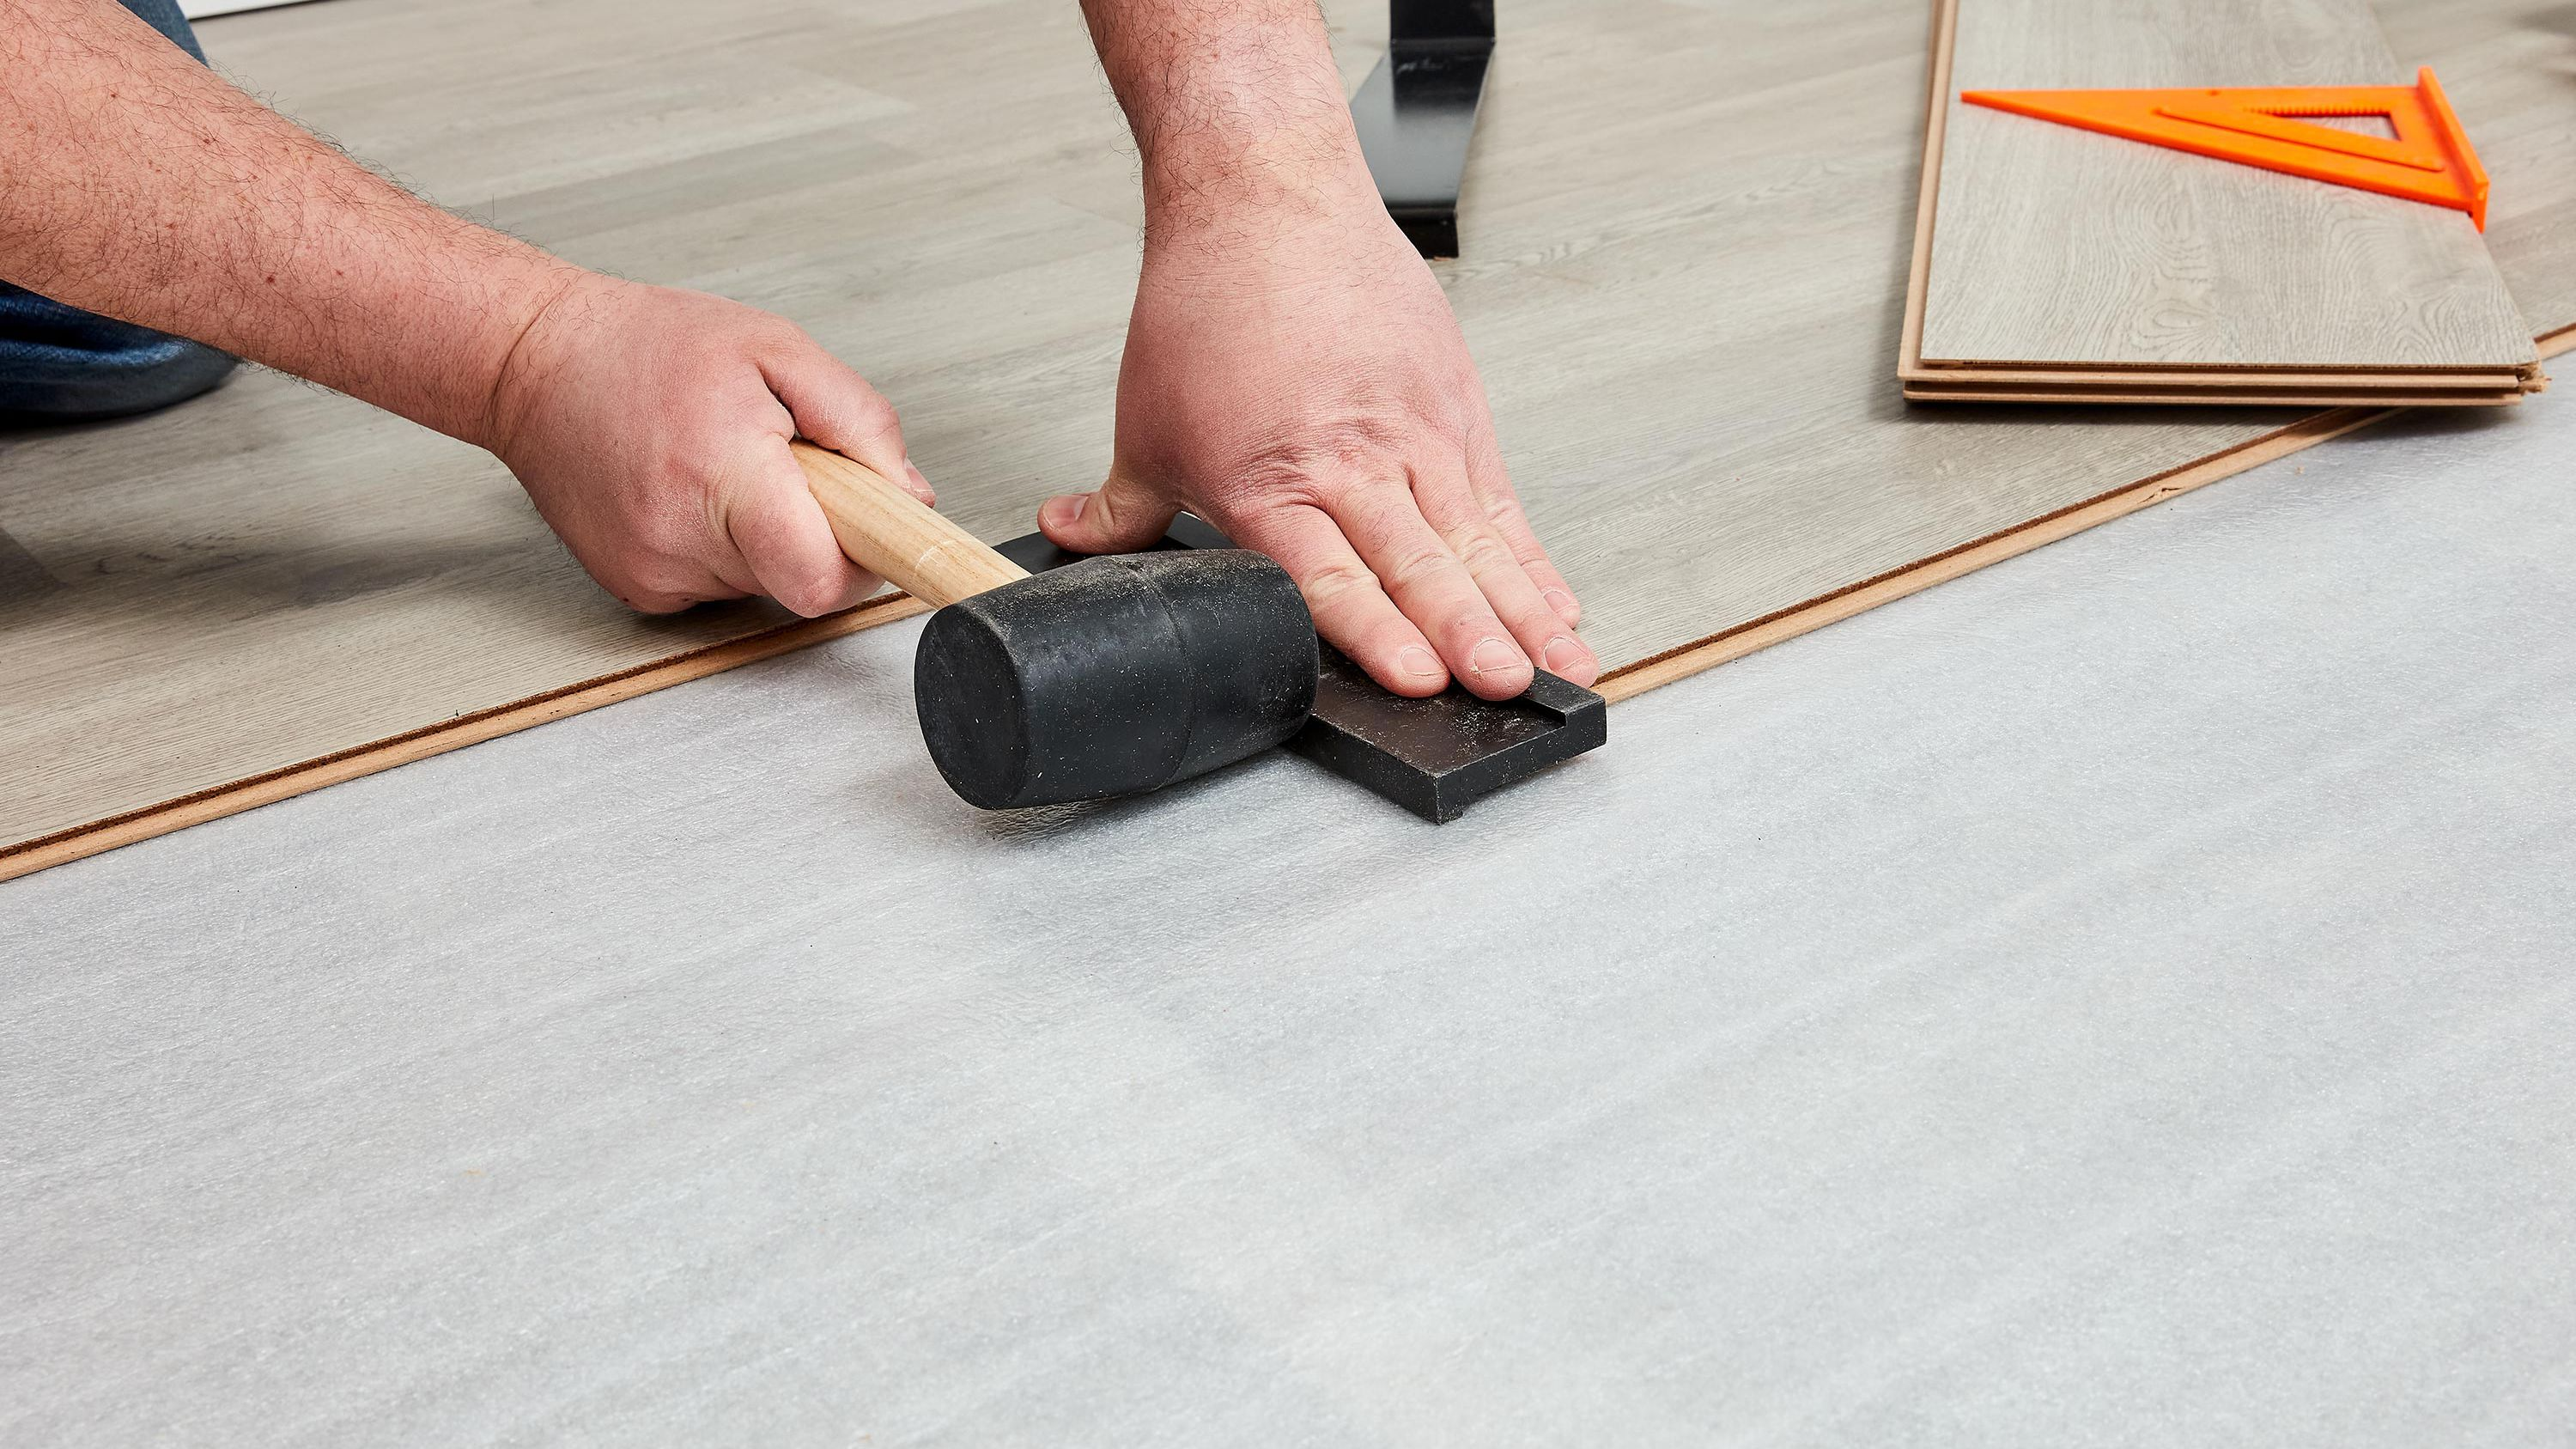 Best Underlayment For Laminate Flooring, Can You Install Laminate Flooring Over Carpet Padding